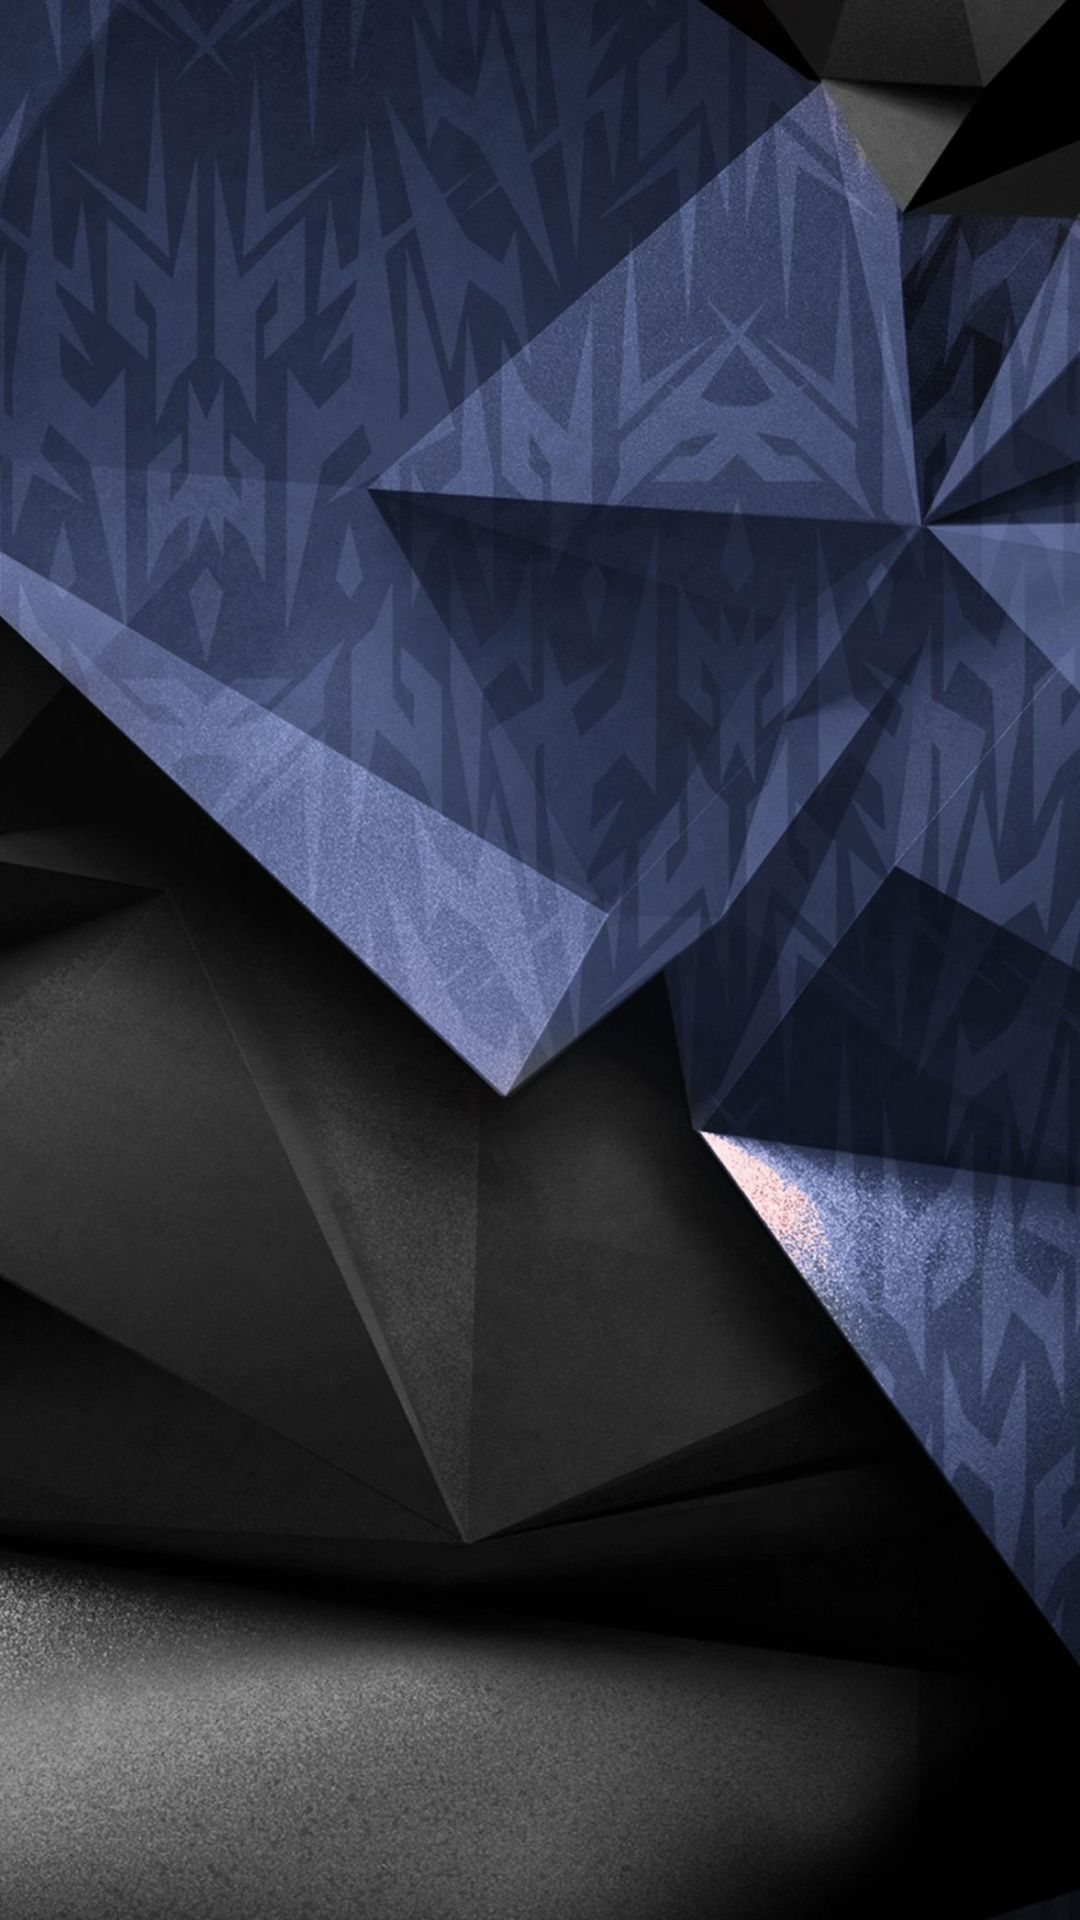 Download Wallpaper Design Acer Triangle Black And White Gaming